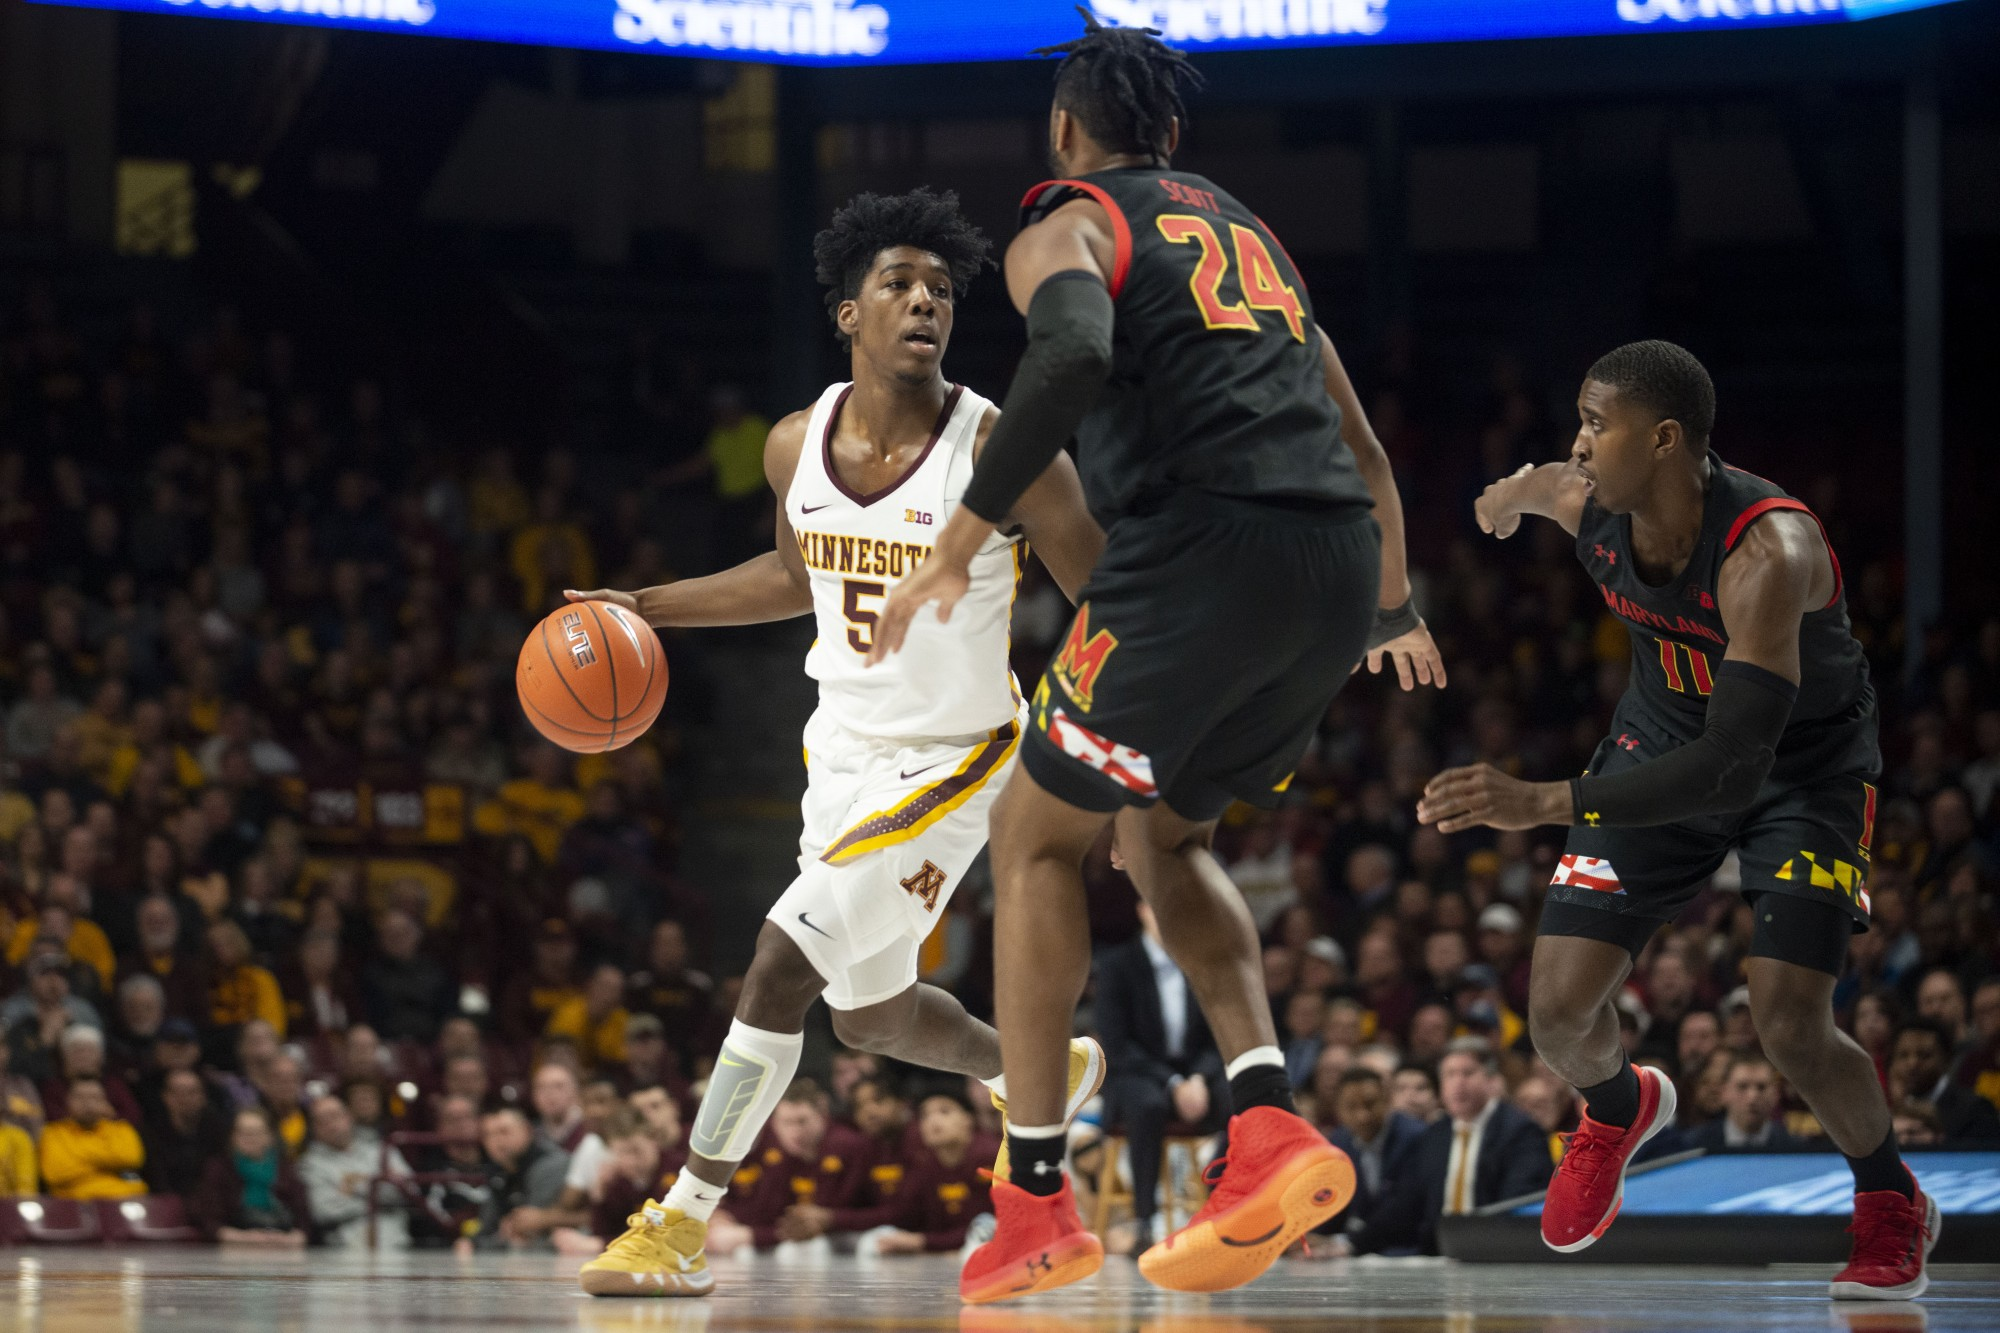 Gophers Guard Marcus Carr dribbles the ball up the court at Williams Arena on Wednesday, Feb. 26. The Gophers went into the second half with a 47-31 lead over the Maryland Terrapins.